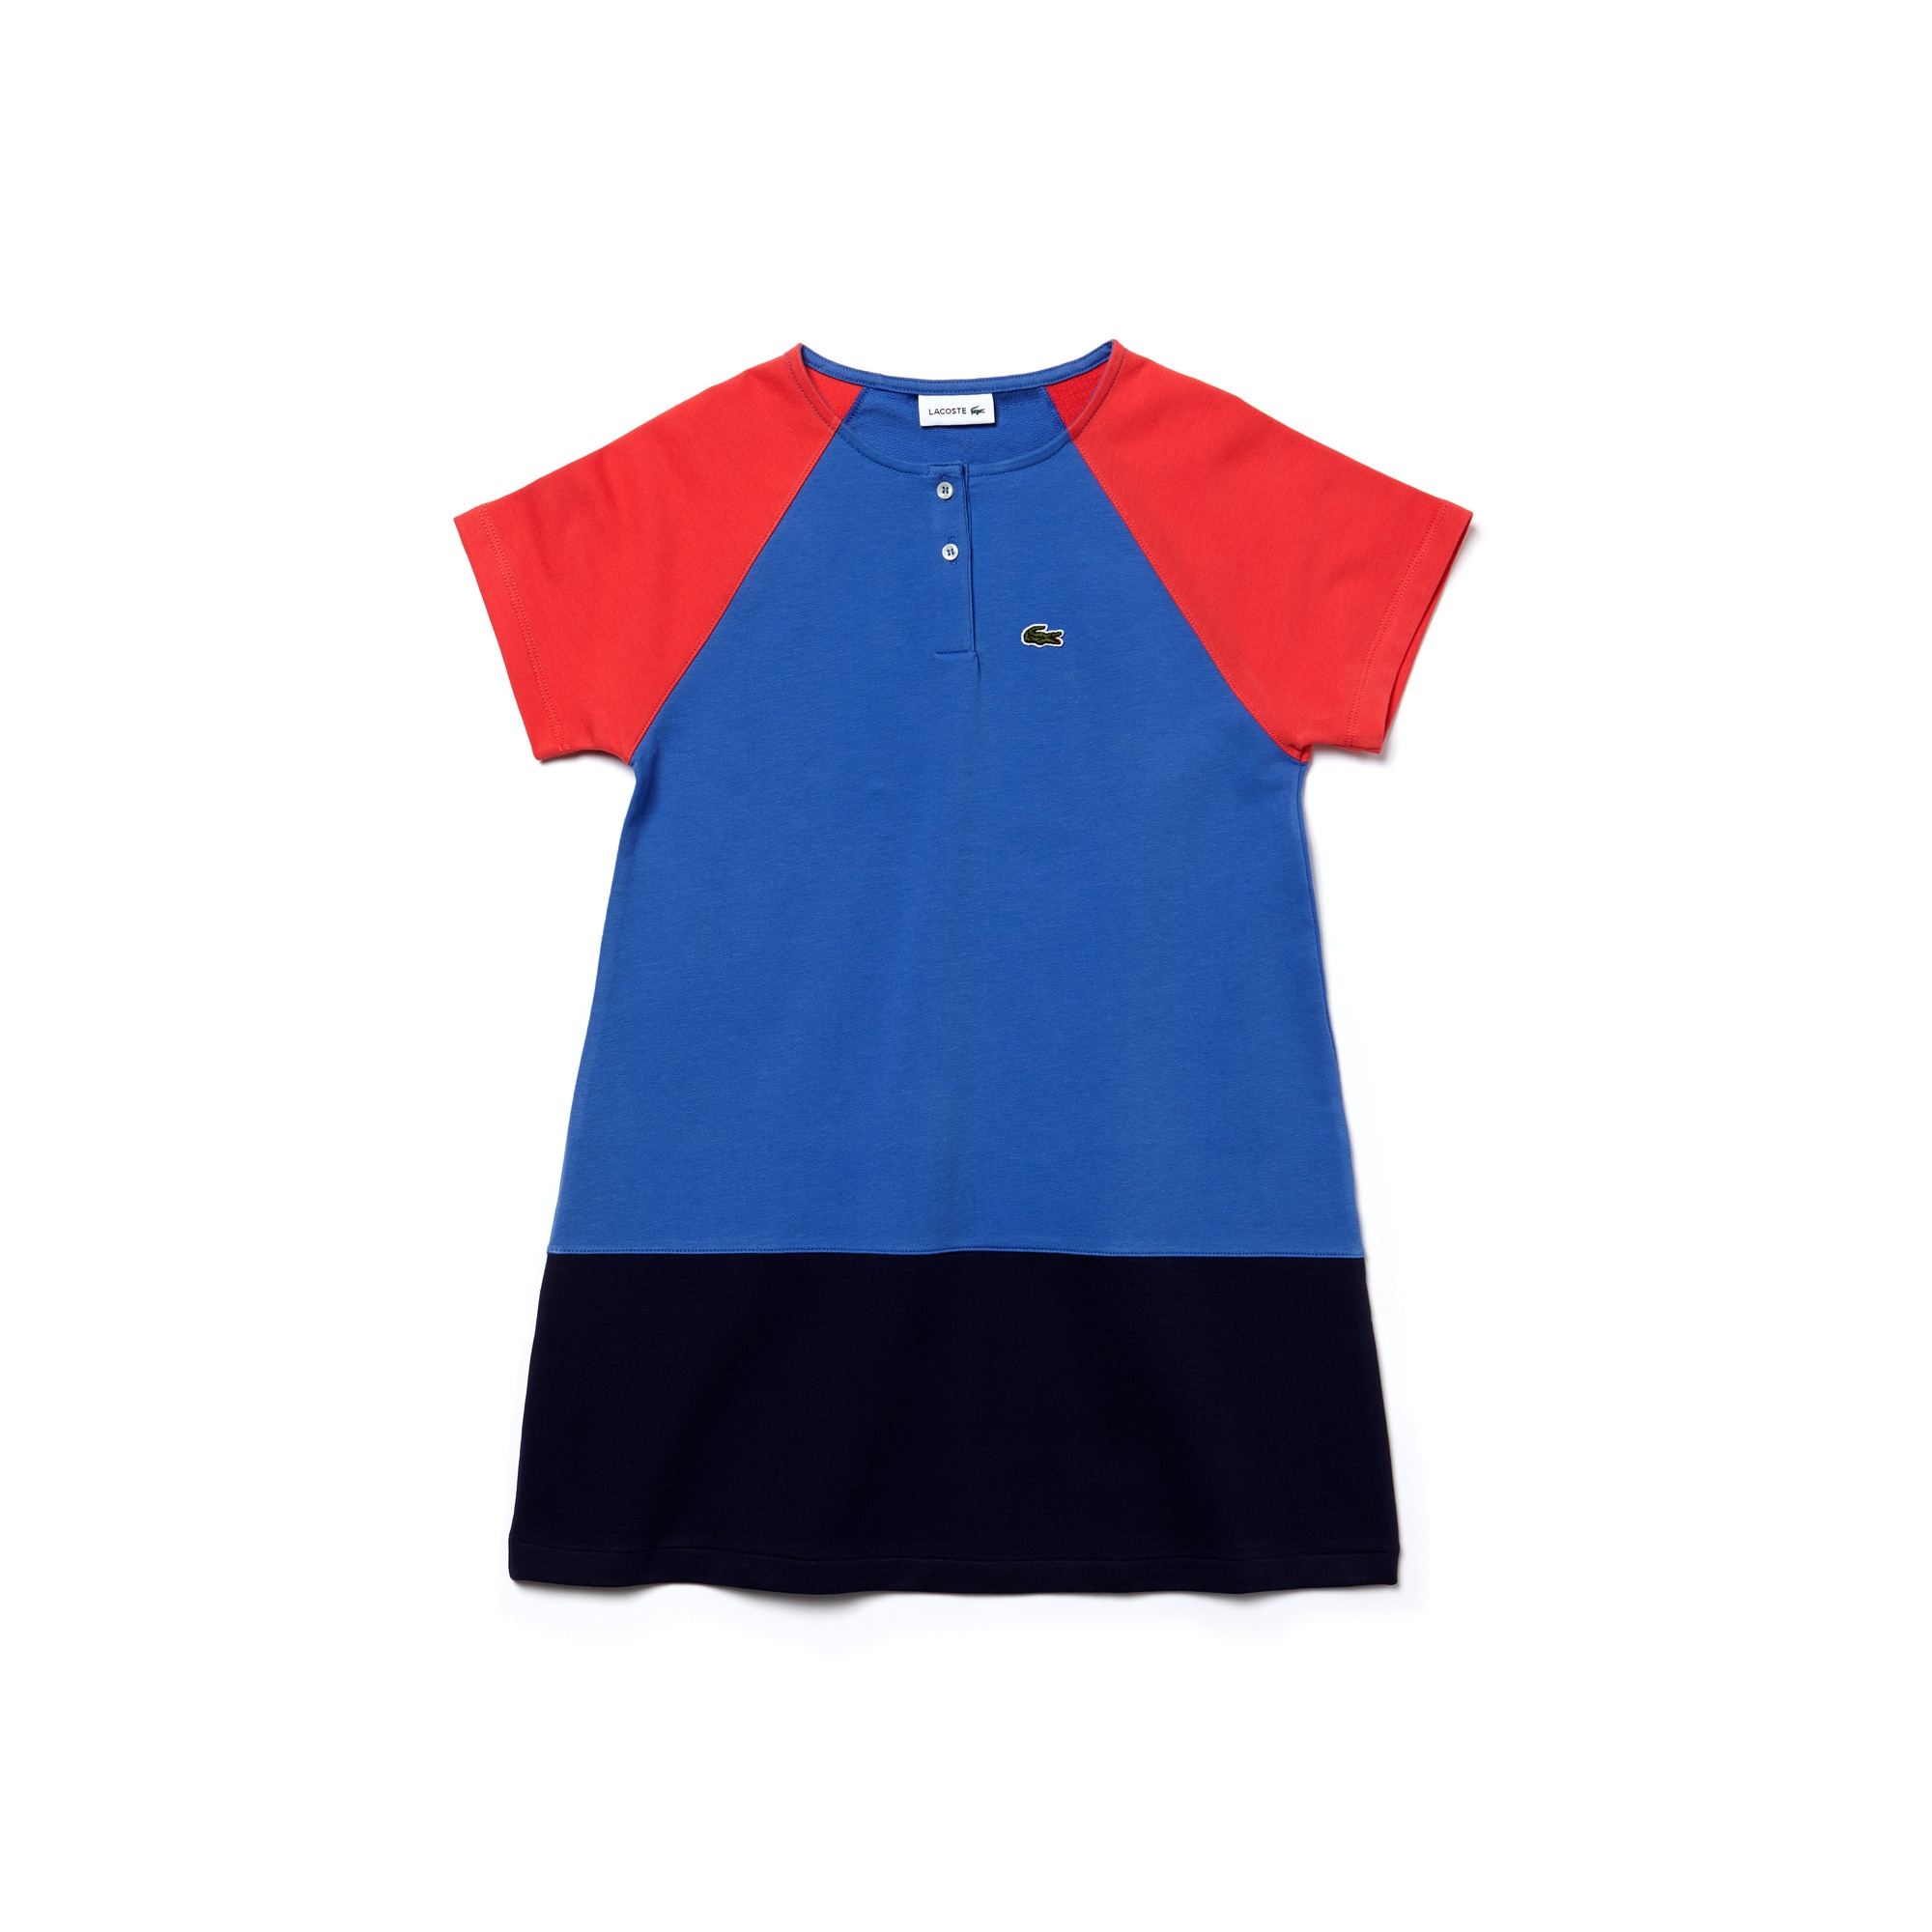 Kids' Colorblock Stretch Cotton Fleece Dress